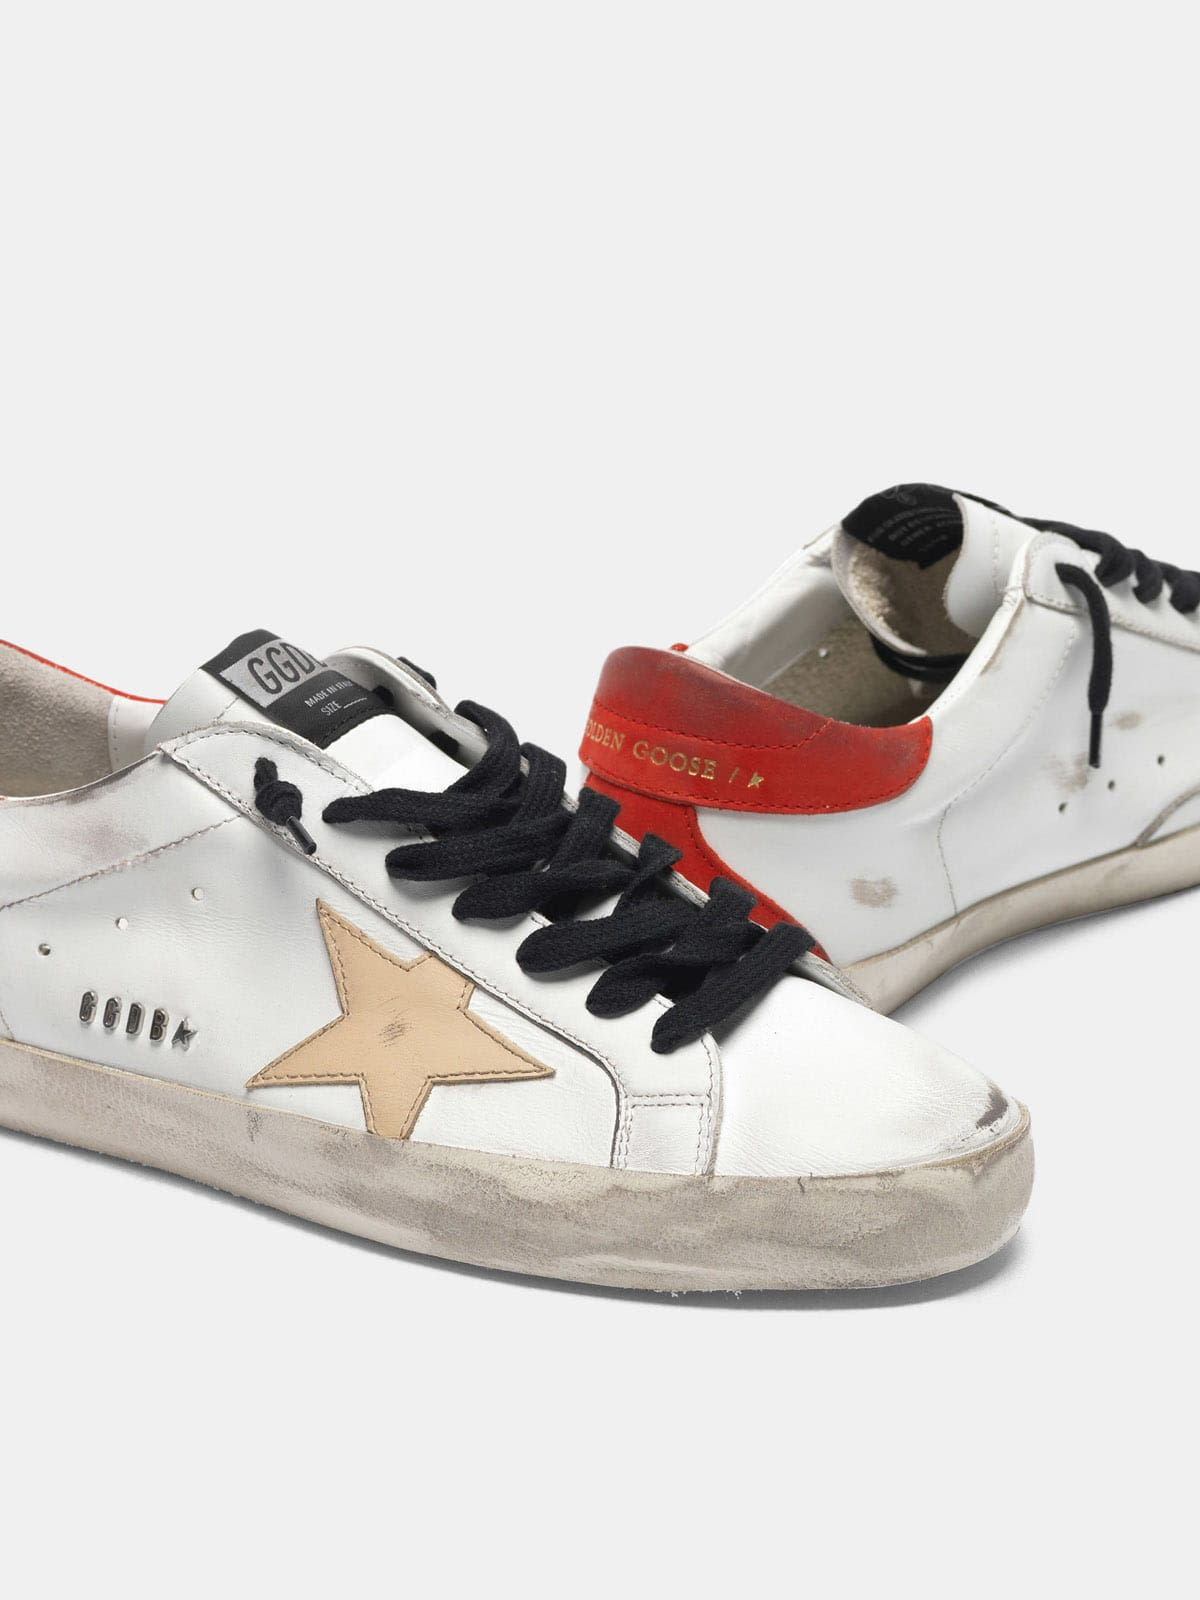 White Super-Star sneakers with red rear and black laces